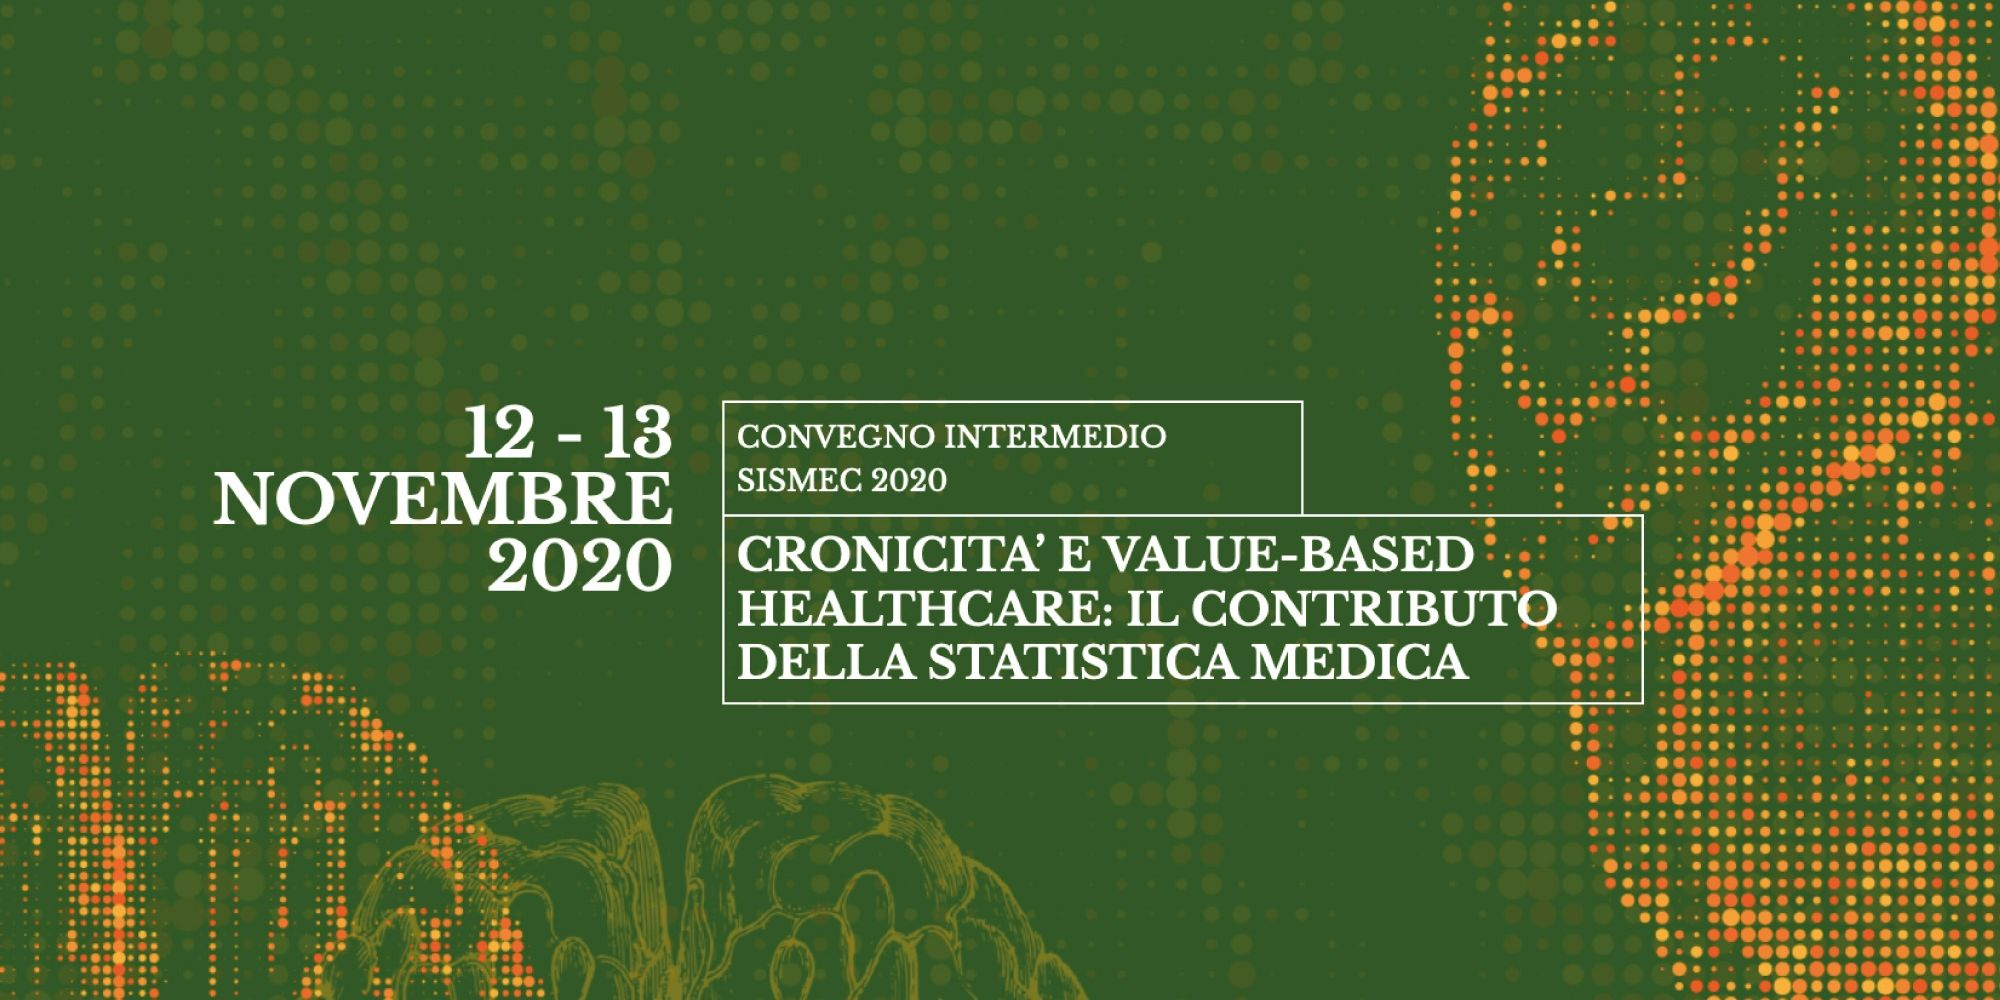 Congresso intermedio Sismec - Cronicità e value-based healthcare